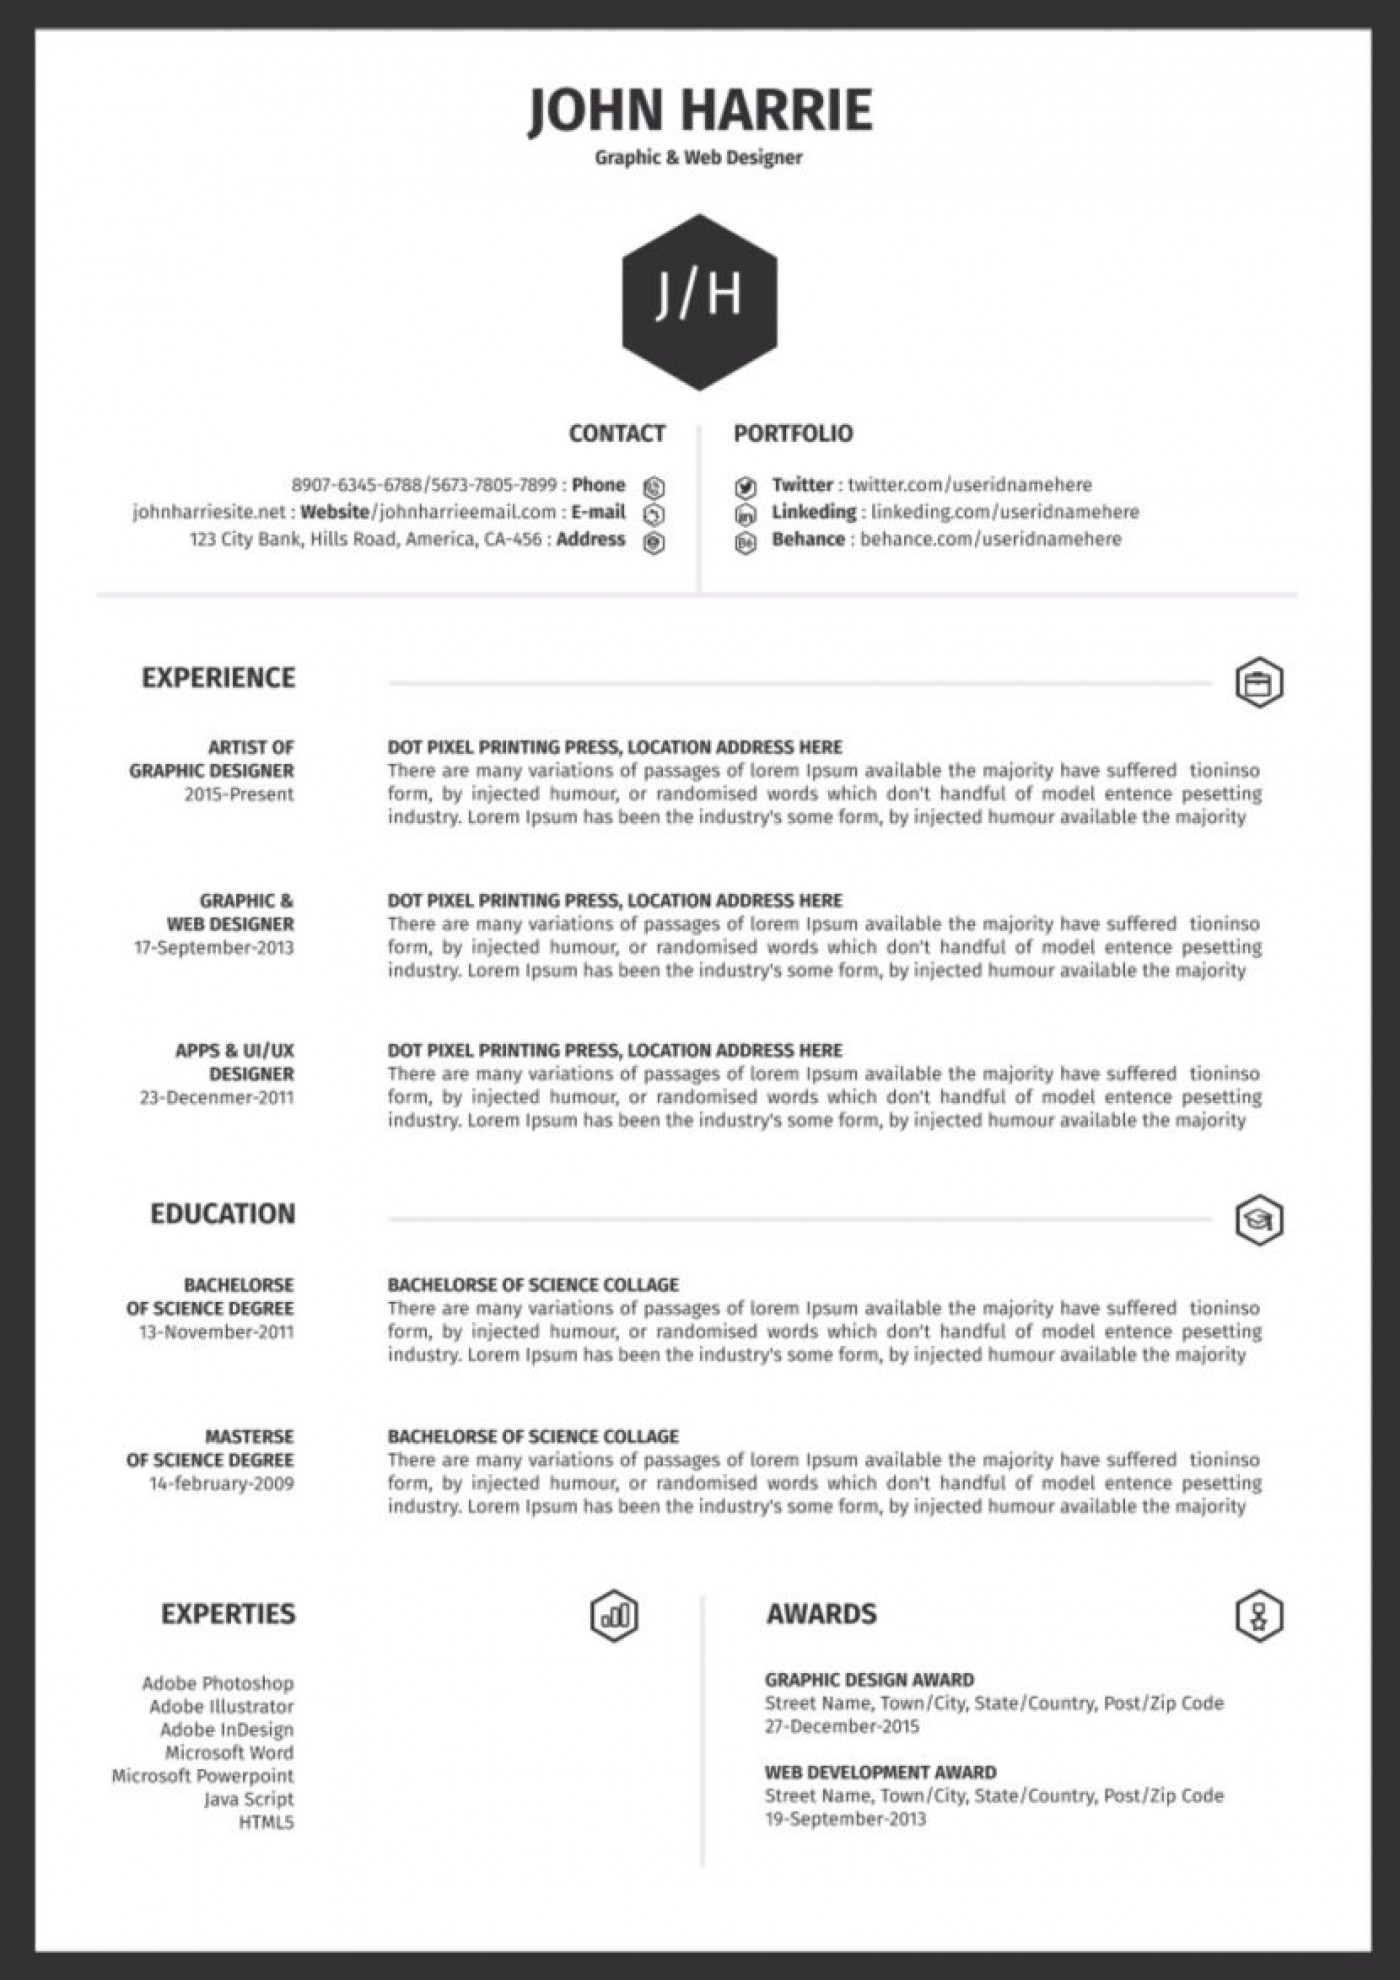 009 Fearsome One Page Resume Template Image  Word Free For Fresher Ppt Download Html1400